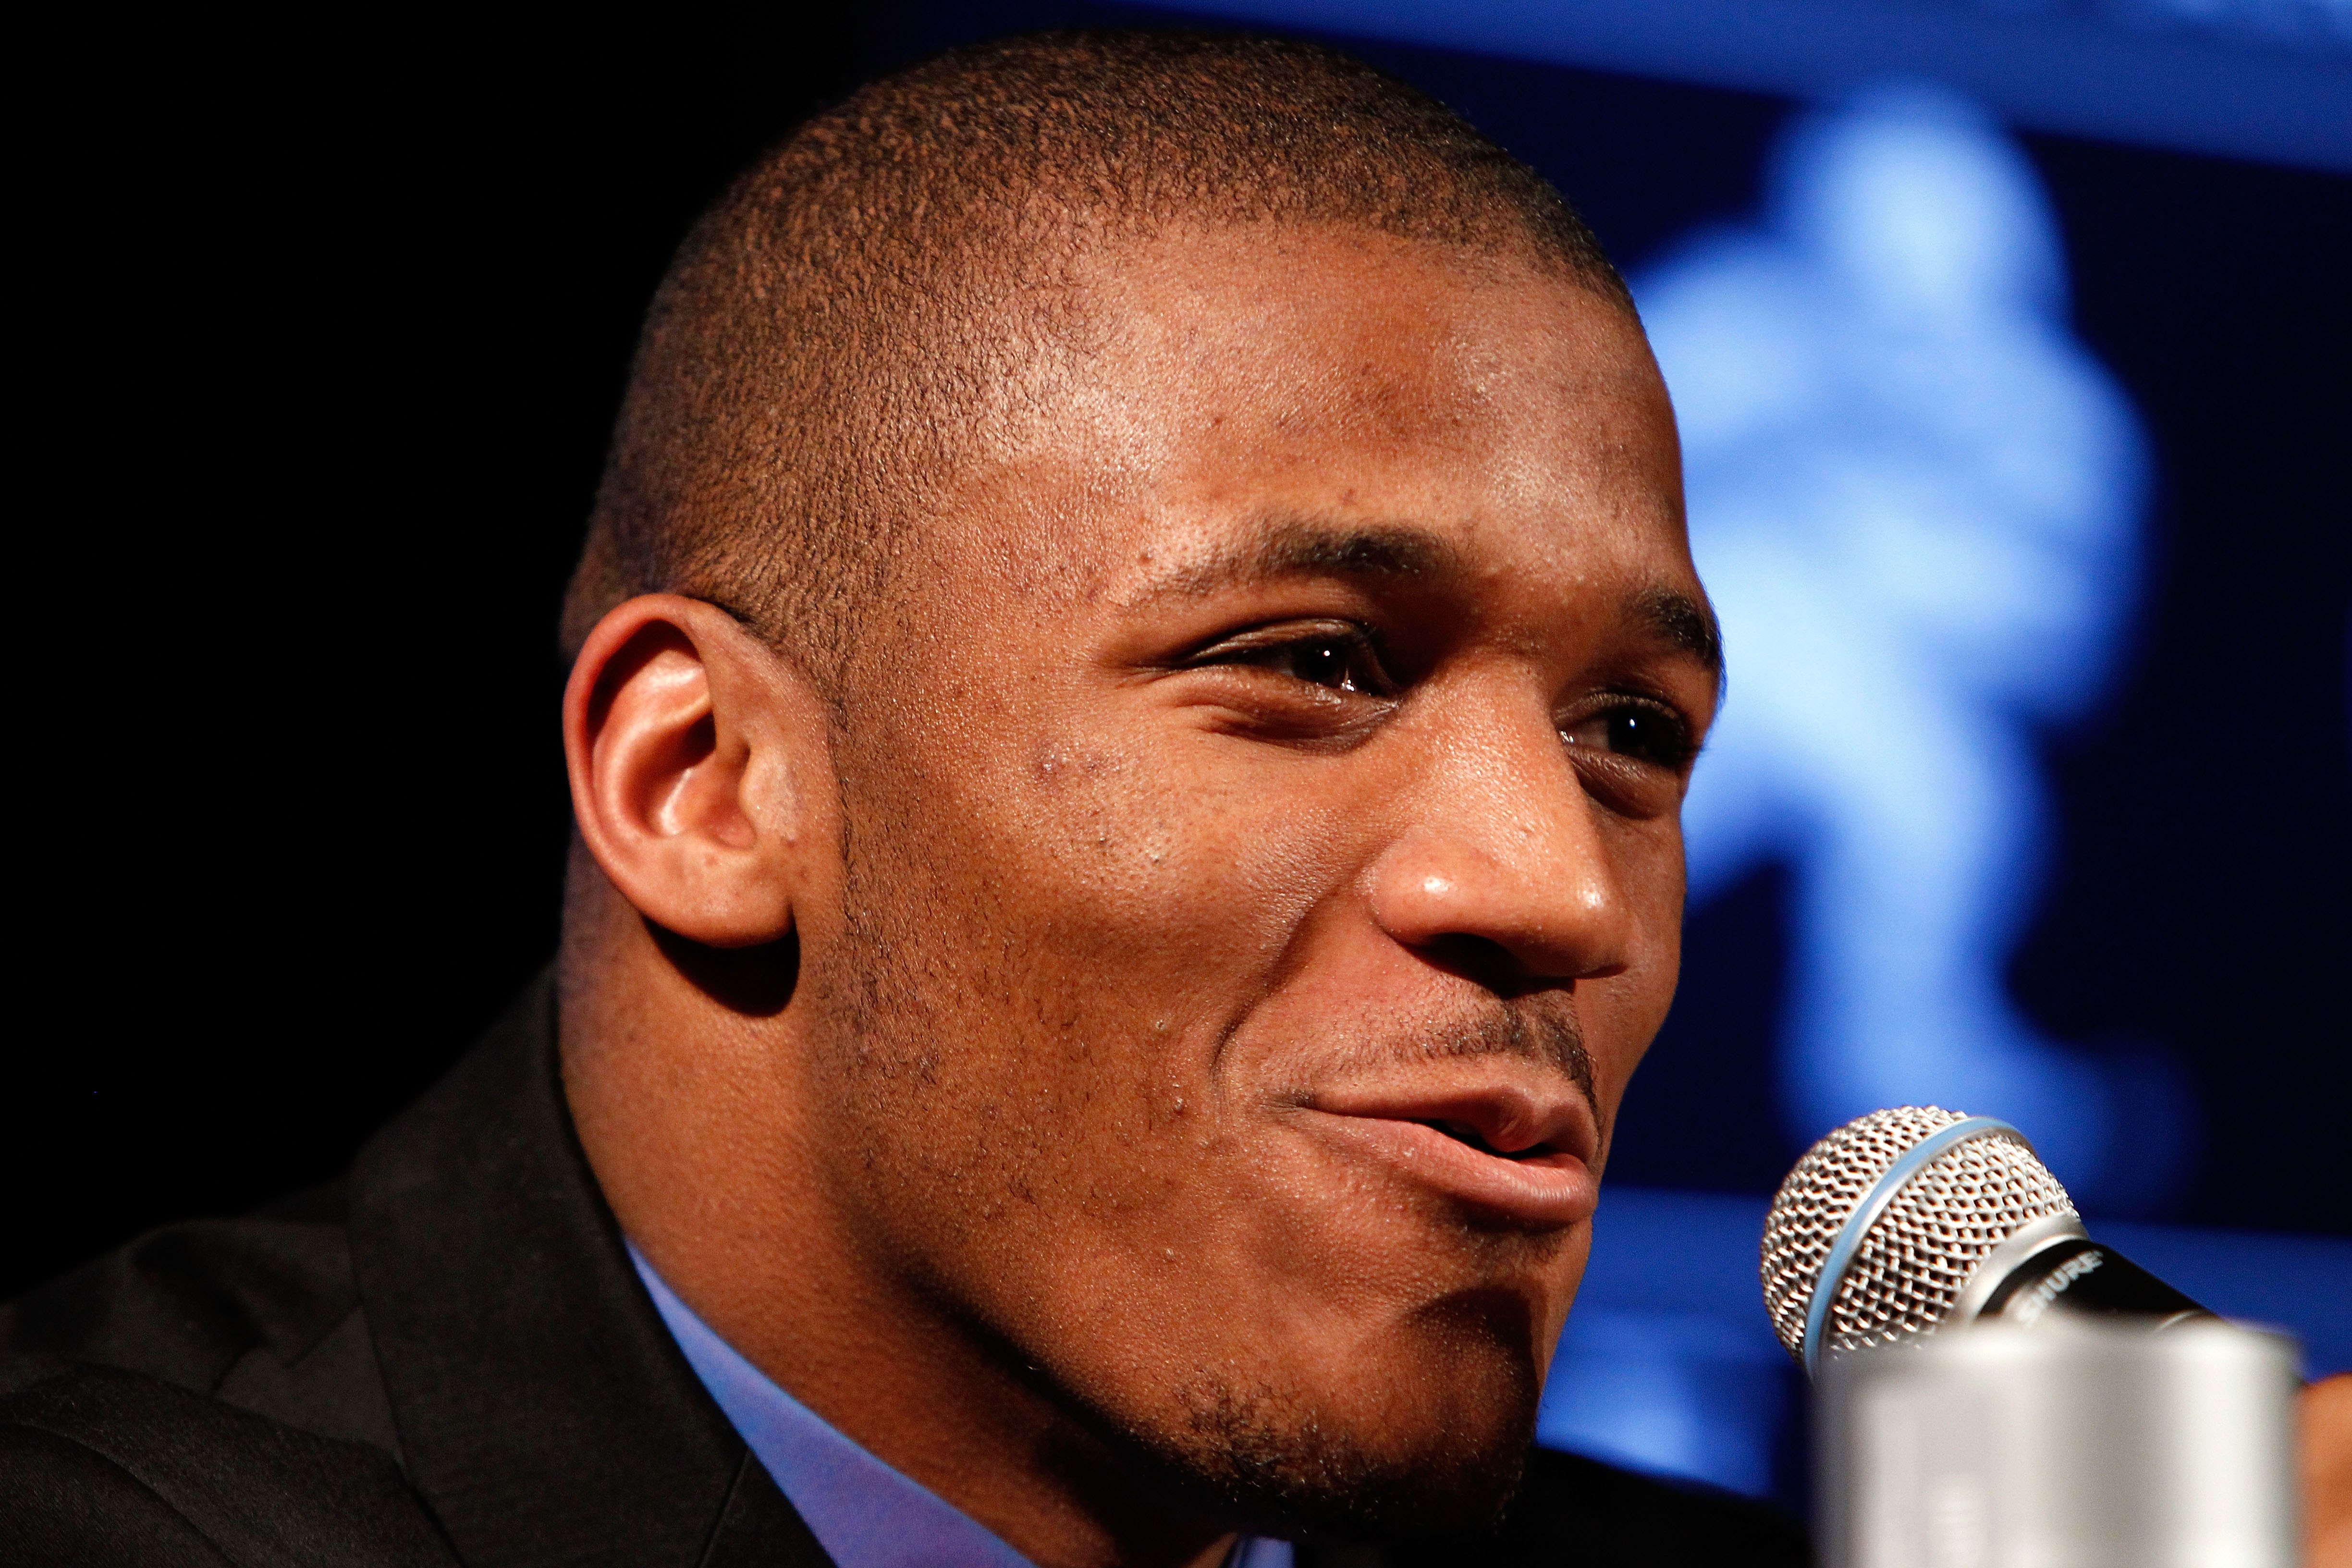 NEW YORK, NY - DECEMBER 11:  LaMichael James of the University of Oregon Ducks speaks during a press conference for Heisman Trophy candidates at The New York Marriott Marquis on December 11, 2010 in New York City.  (Photo by Jeff Zelevansky/Getty Images)